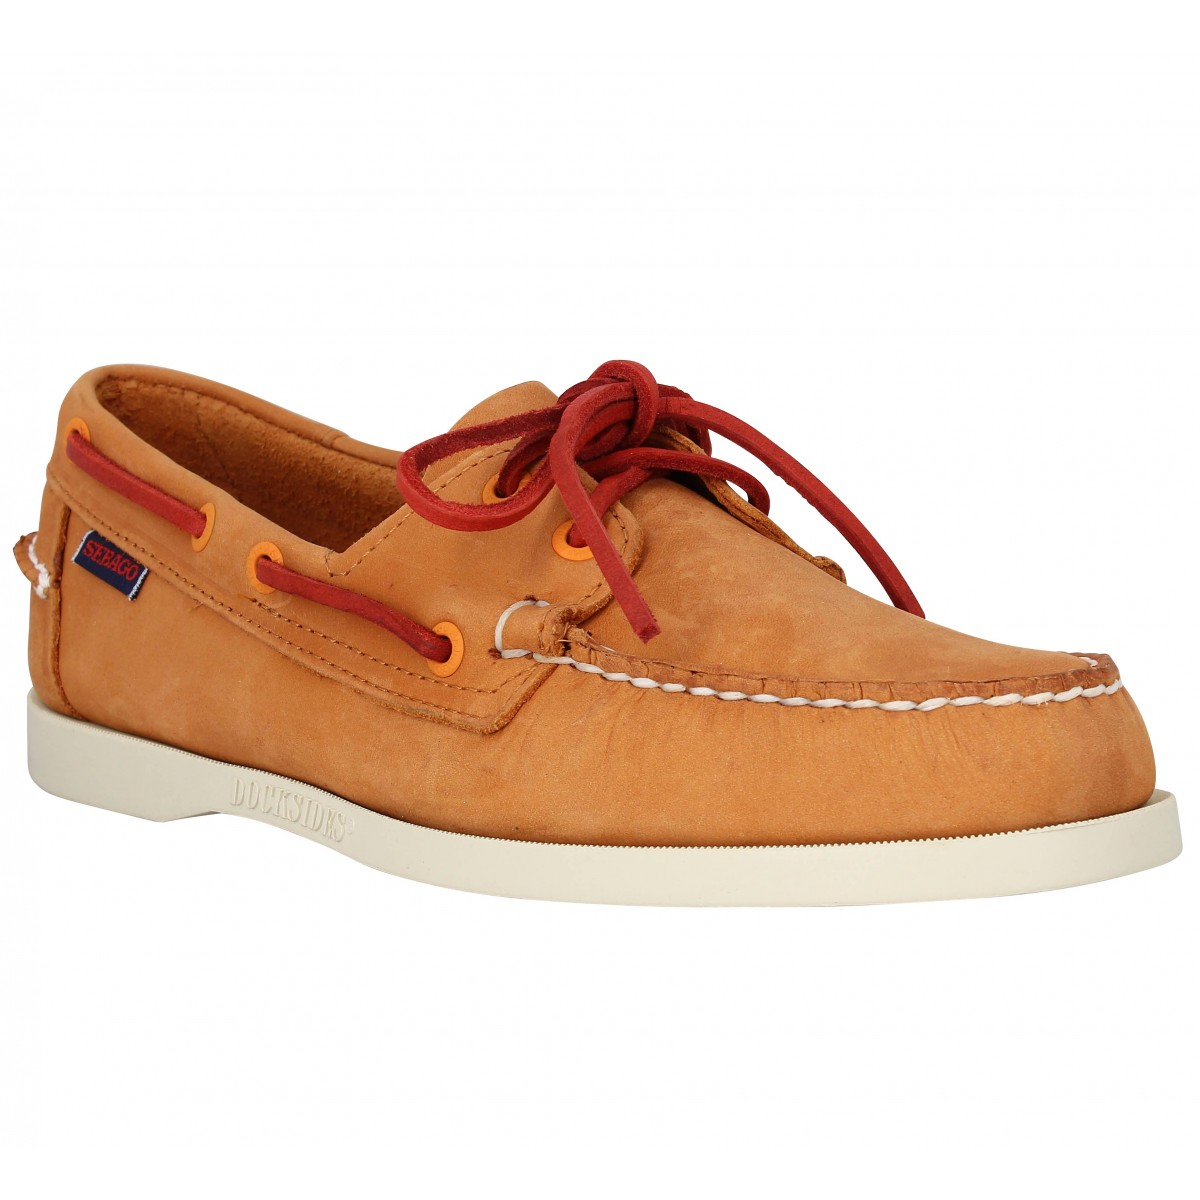 Sebago Homme Docksides Velours-44-orange